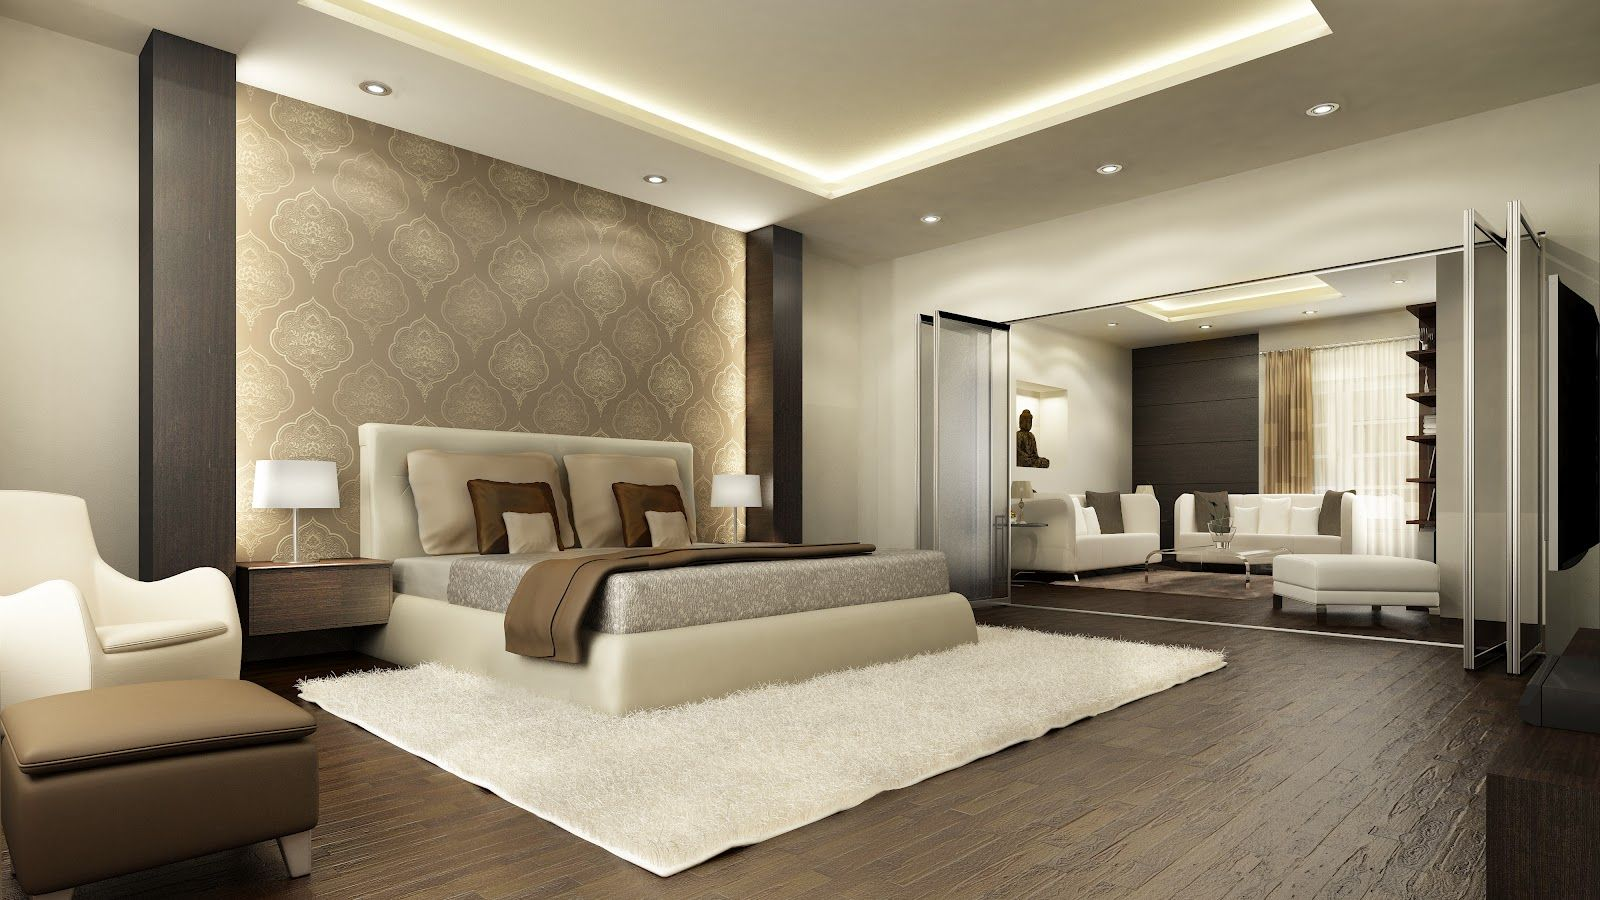 Master Bedroom Interior Design design with scandinavian along. bedroom designs find. teens room